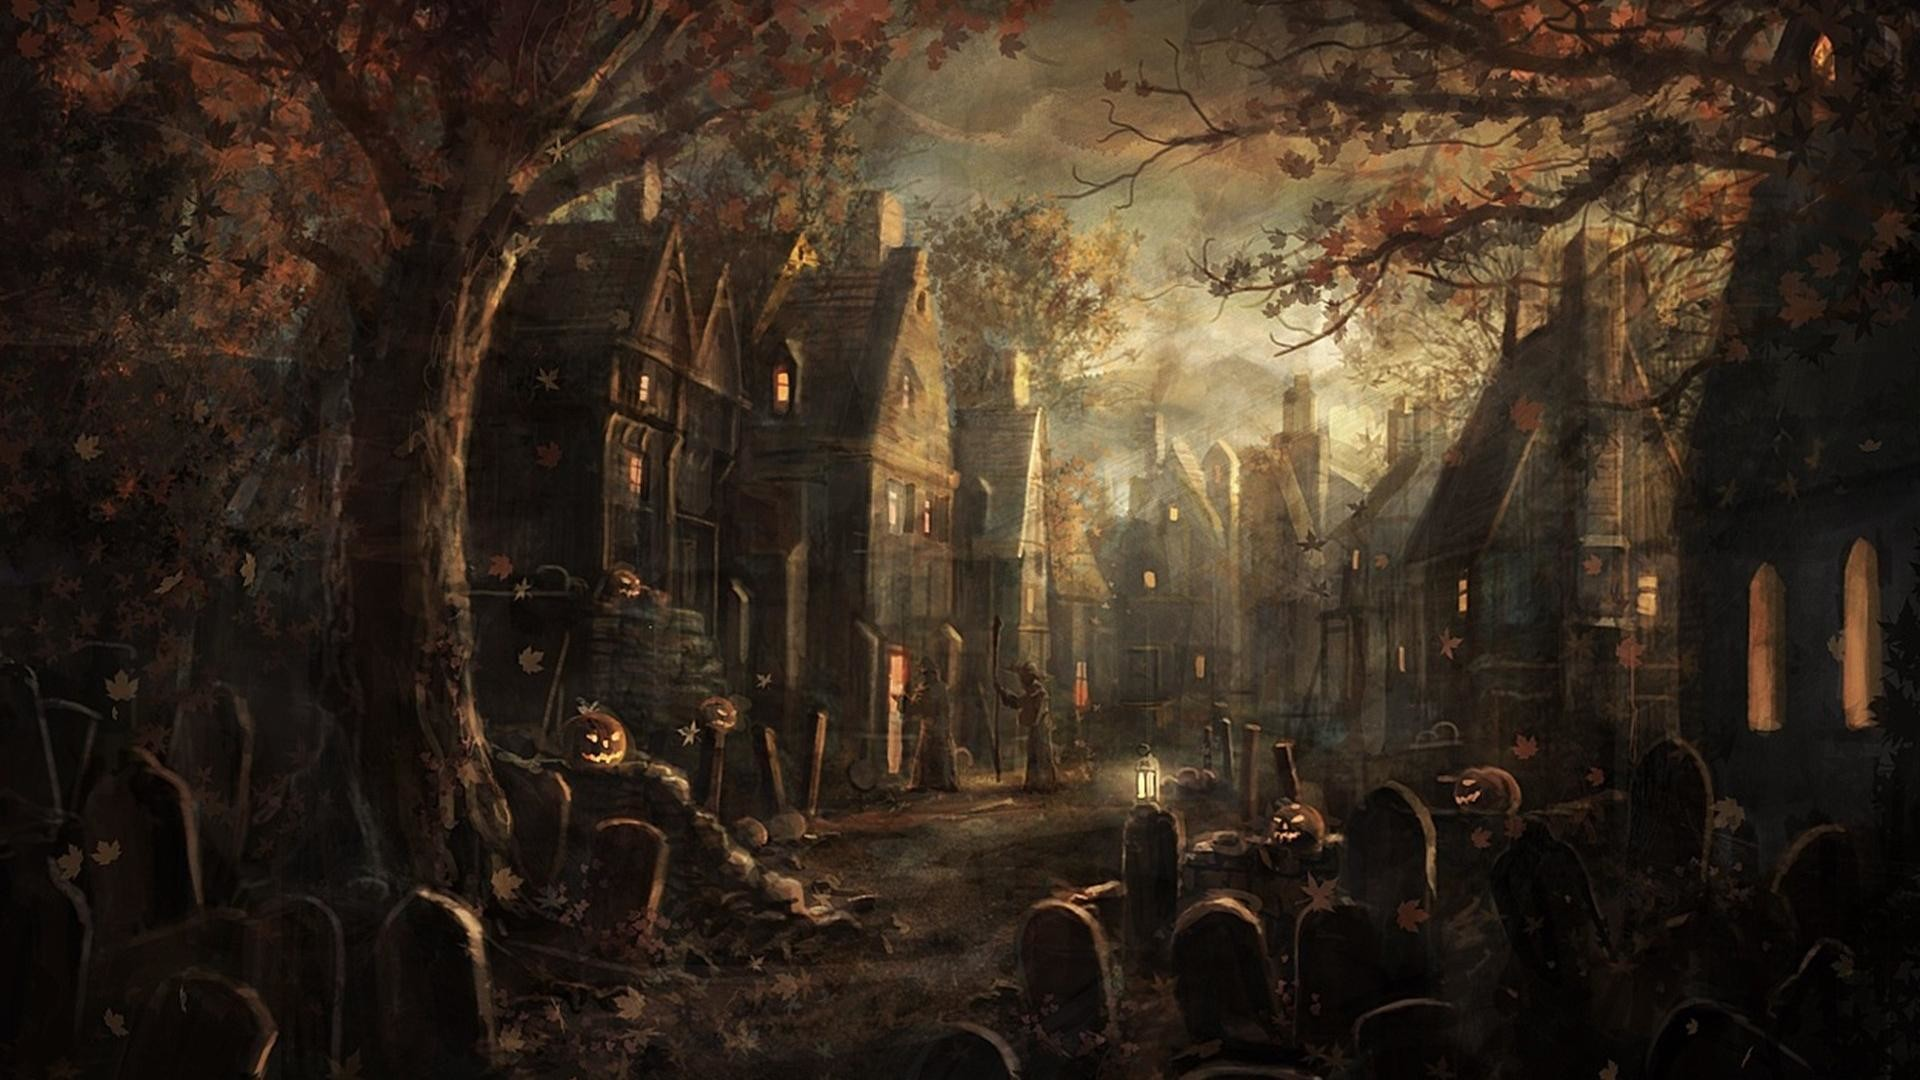 1920x1080 Hd Halloween Wallpaper 66 Images